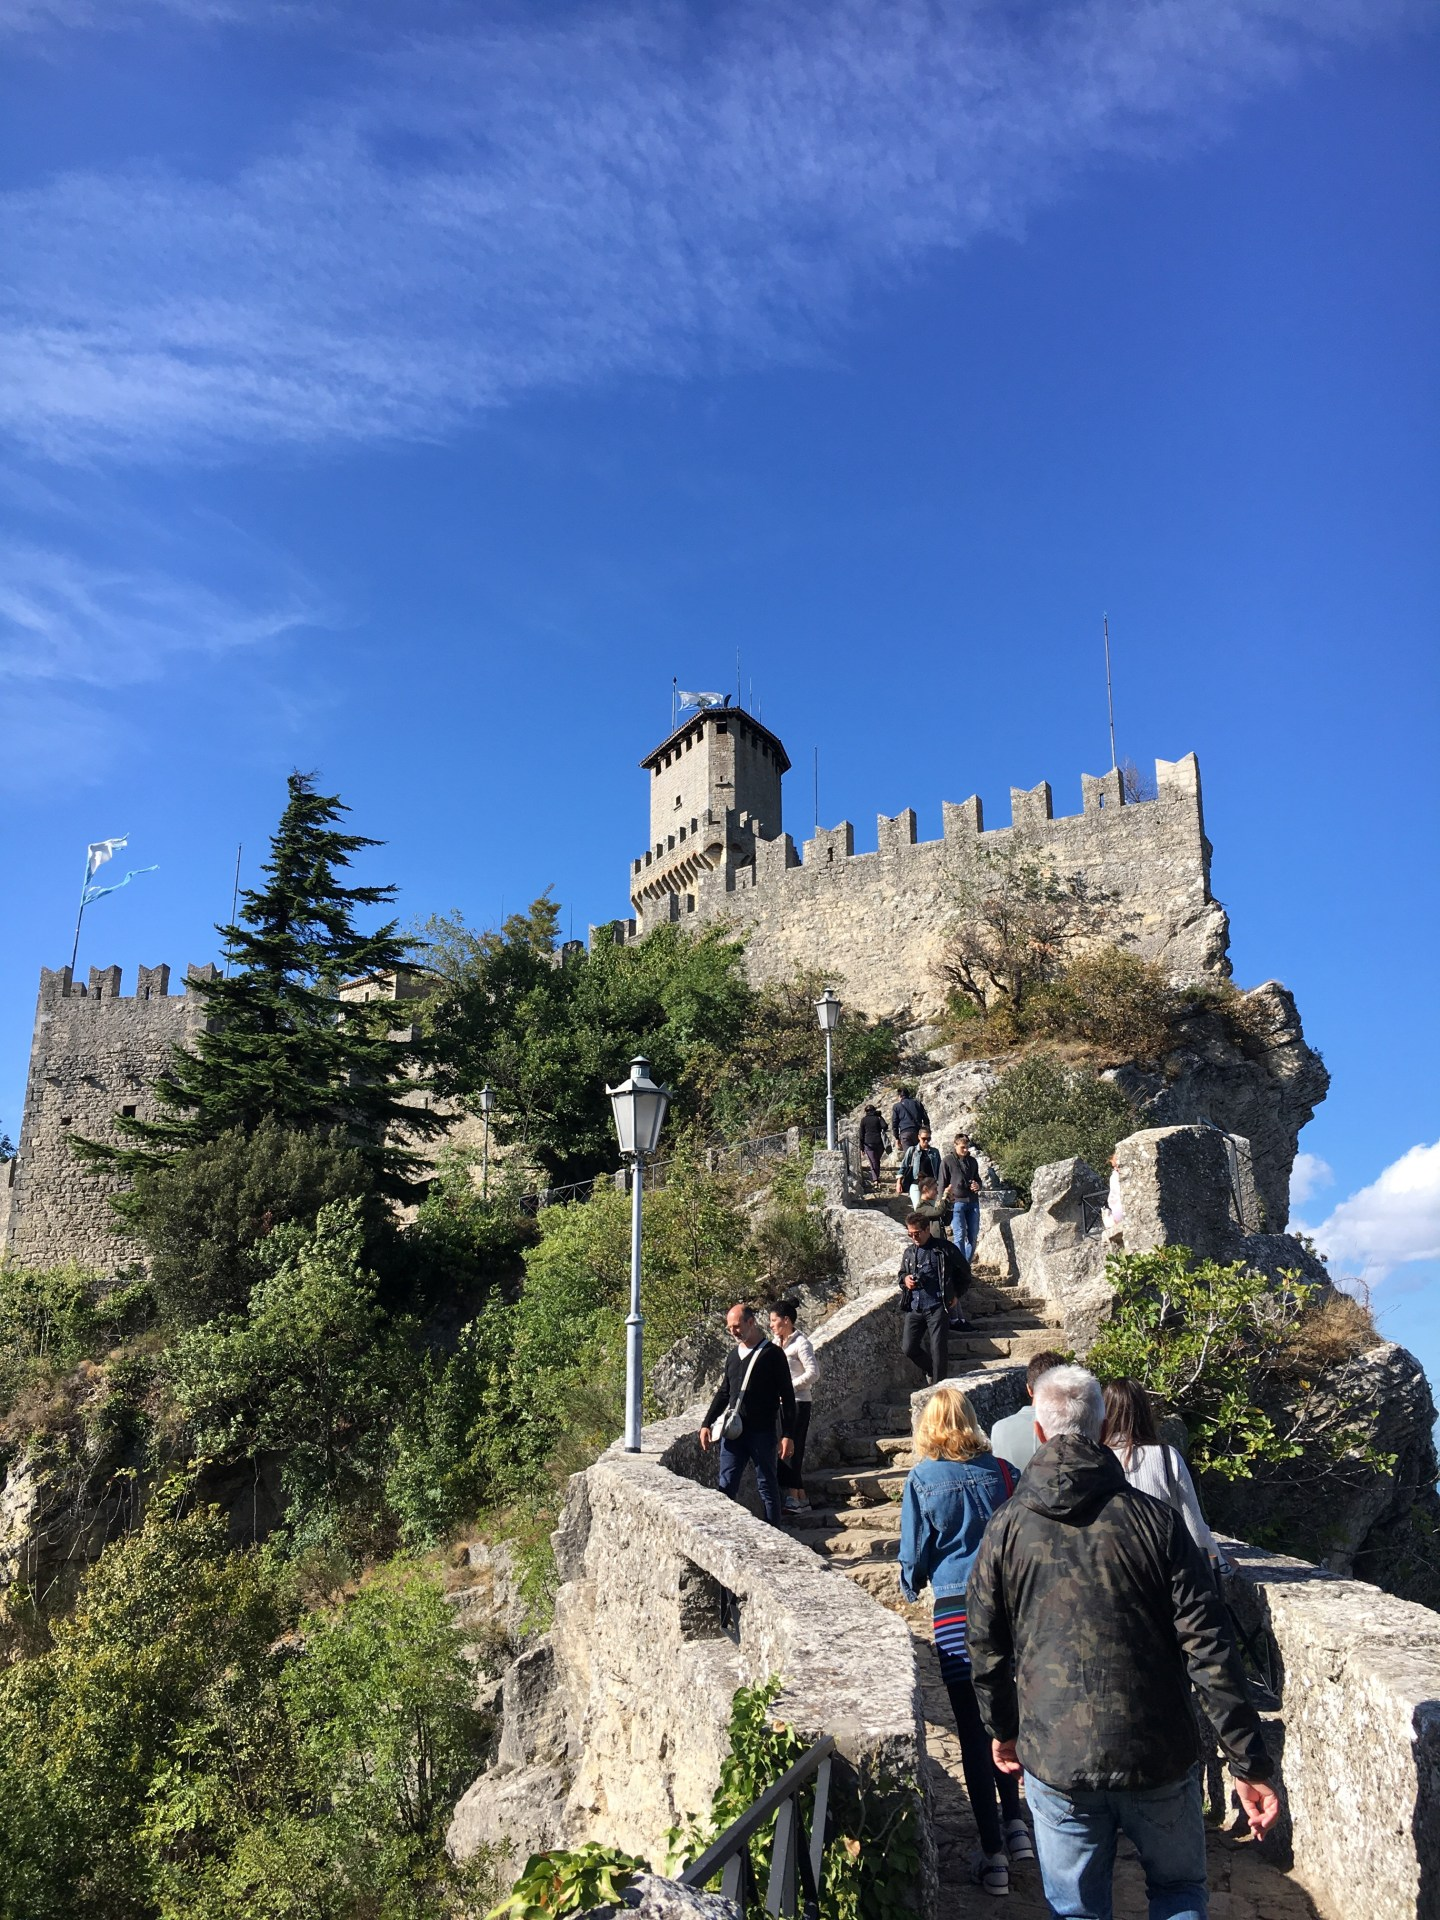 A postcard from my hometown, the Republic of San Marino